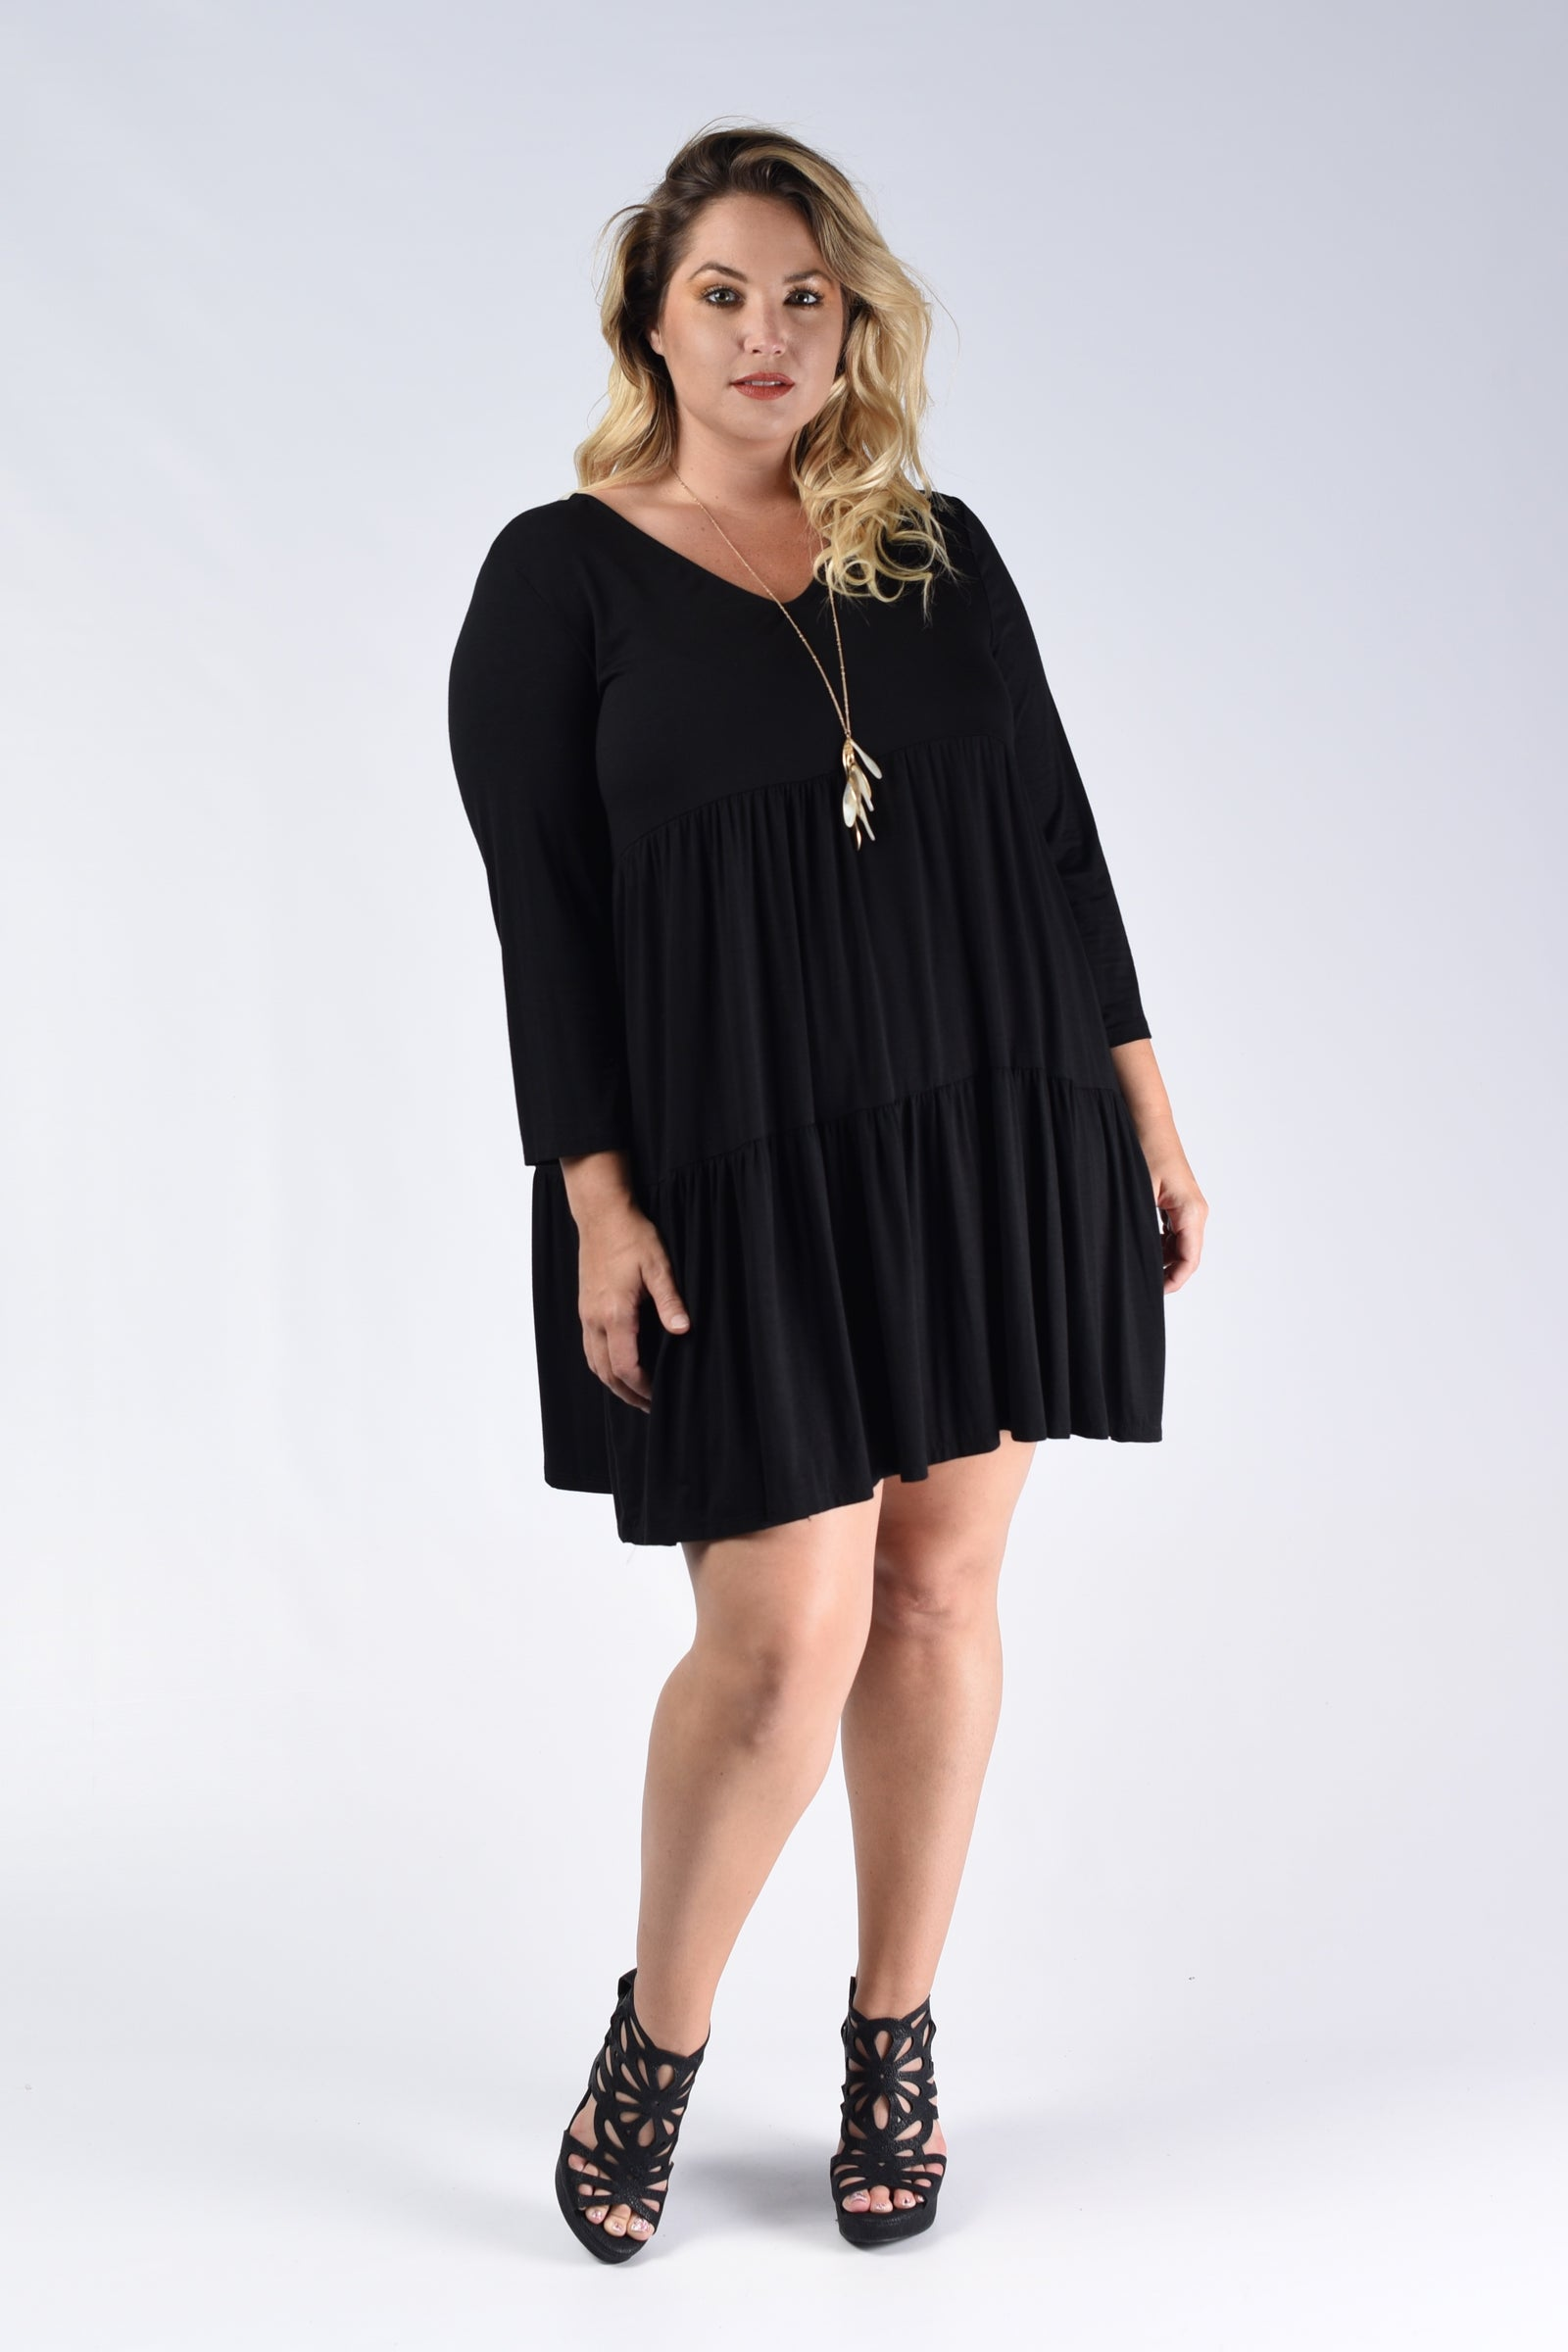 Black Tiered V-Neck Dress - www.mycurvystore.com - Curvy Boutique - Plus Size